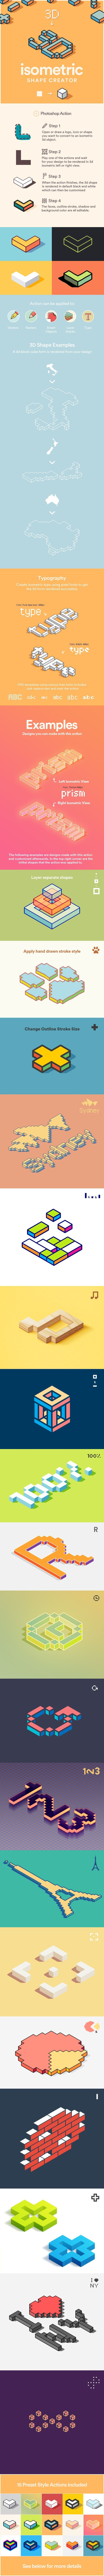 3D Isometric Shape Creator #3d shape #action #creator • Available here →